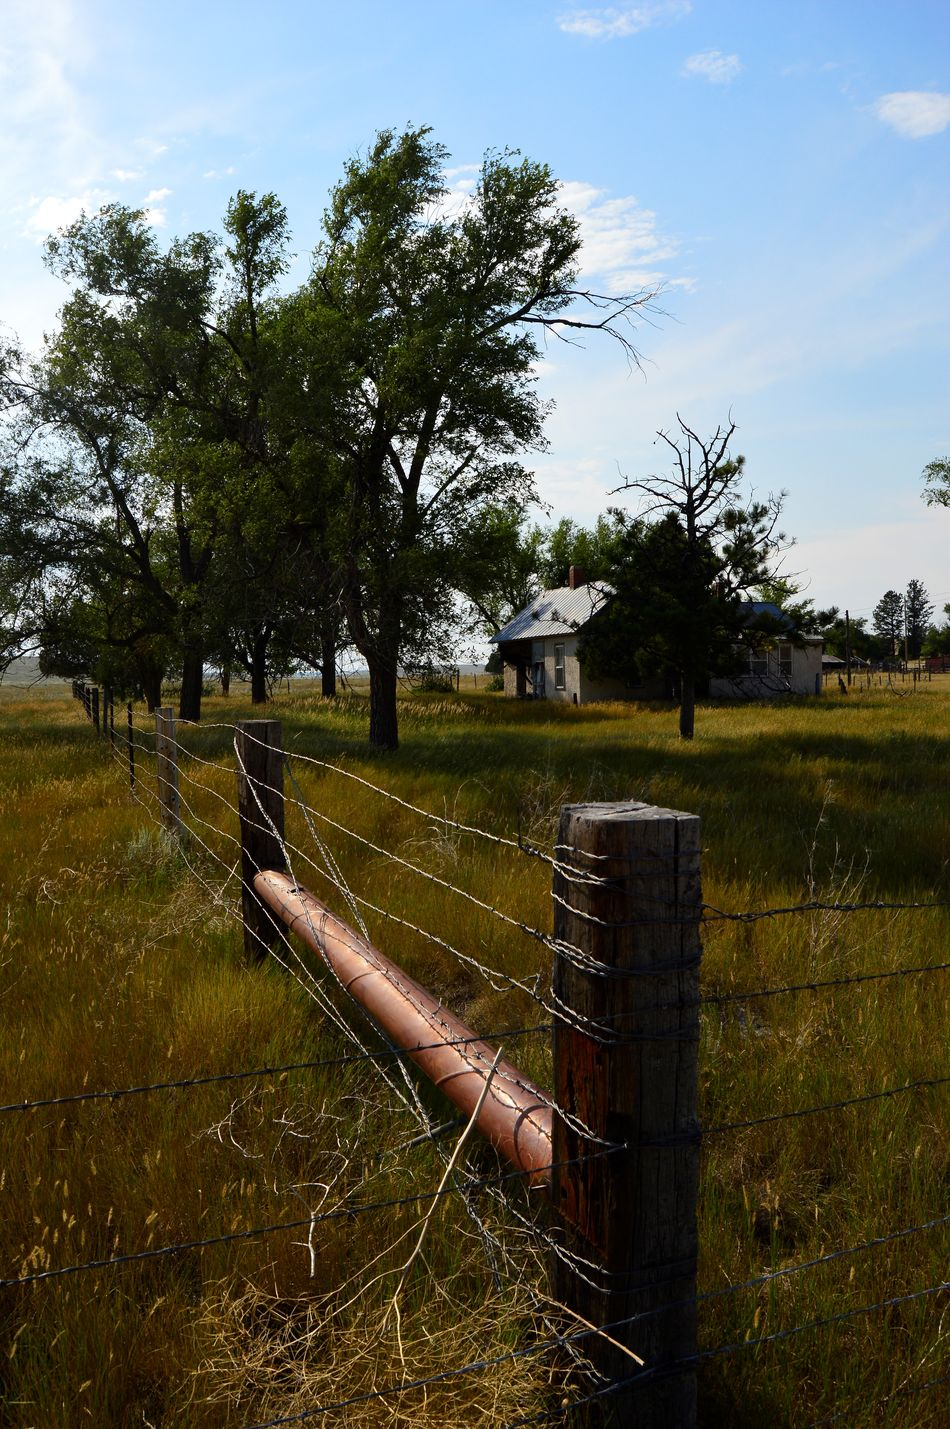 Abandoned ranch August Afternoon Grass Is Green Hot Summer Day Long Shadow Of Late Afternoon No People North Of Lusk Wyoming Out In The Country Outdoors